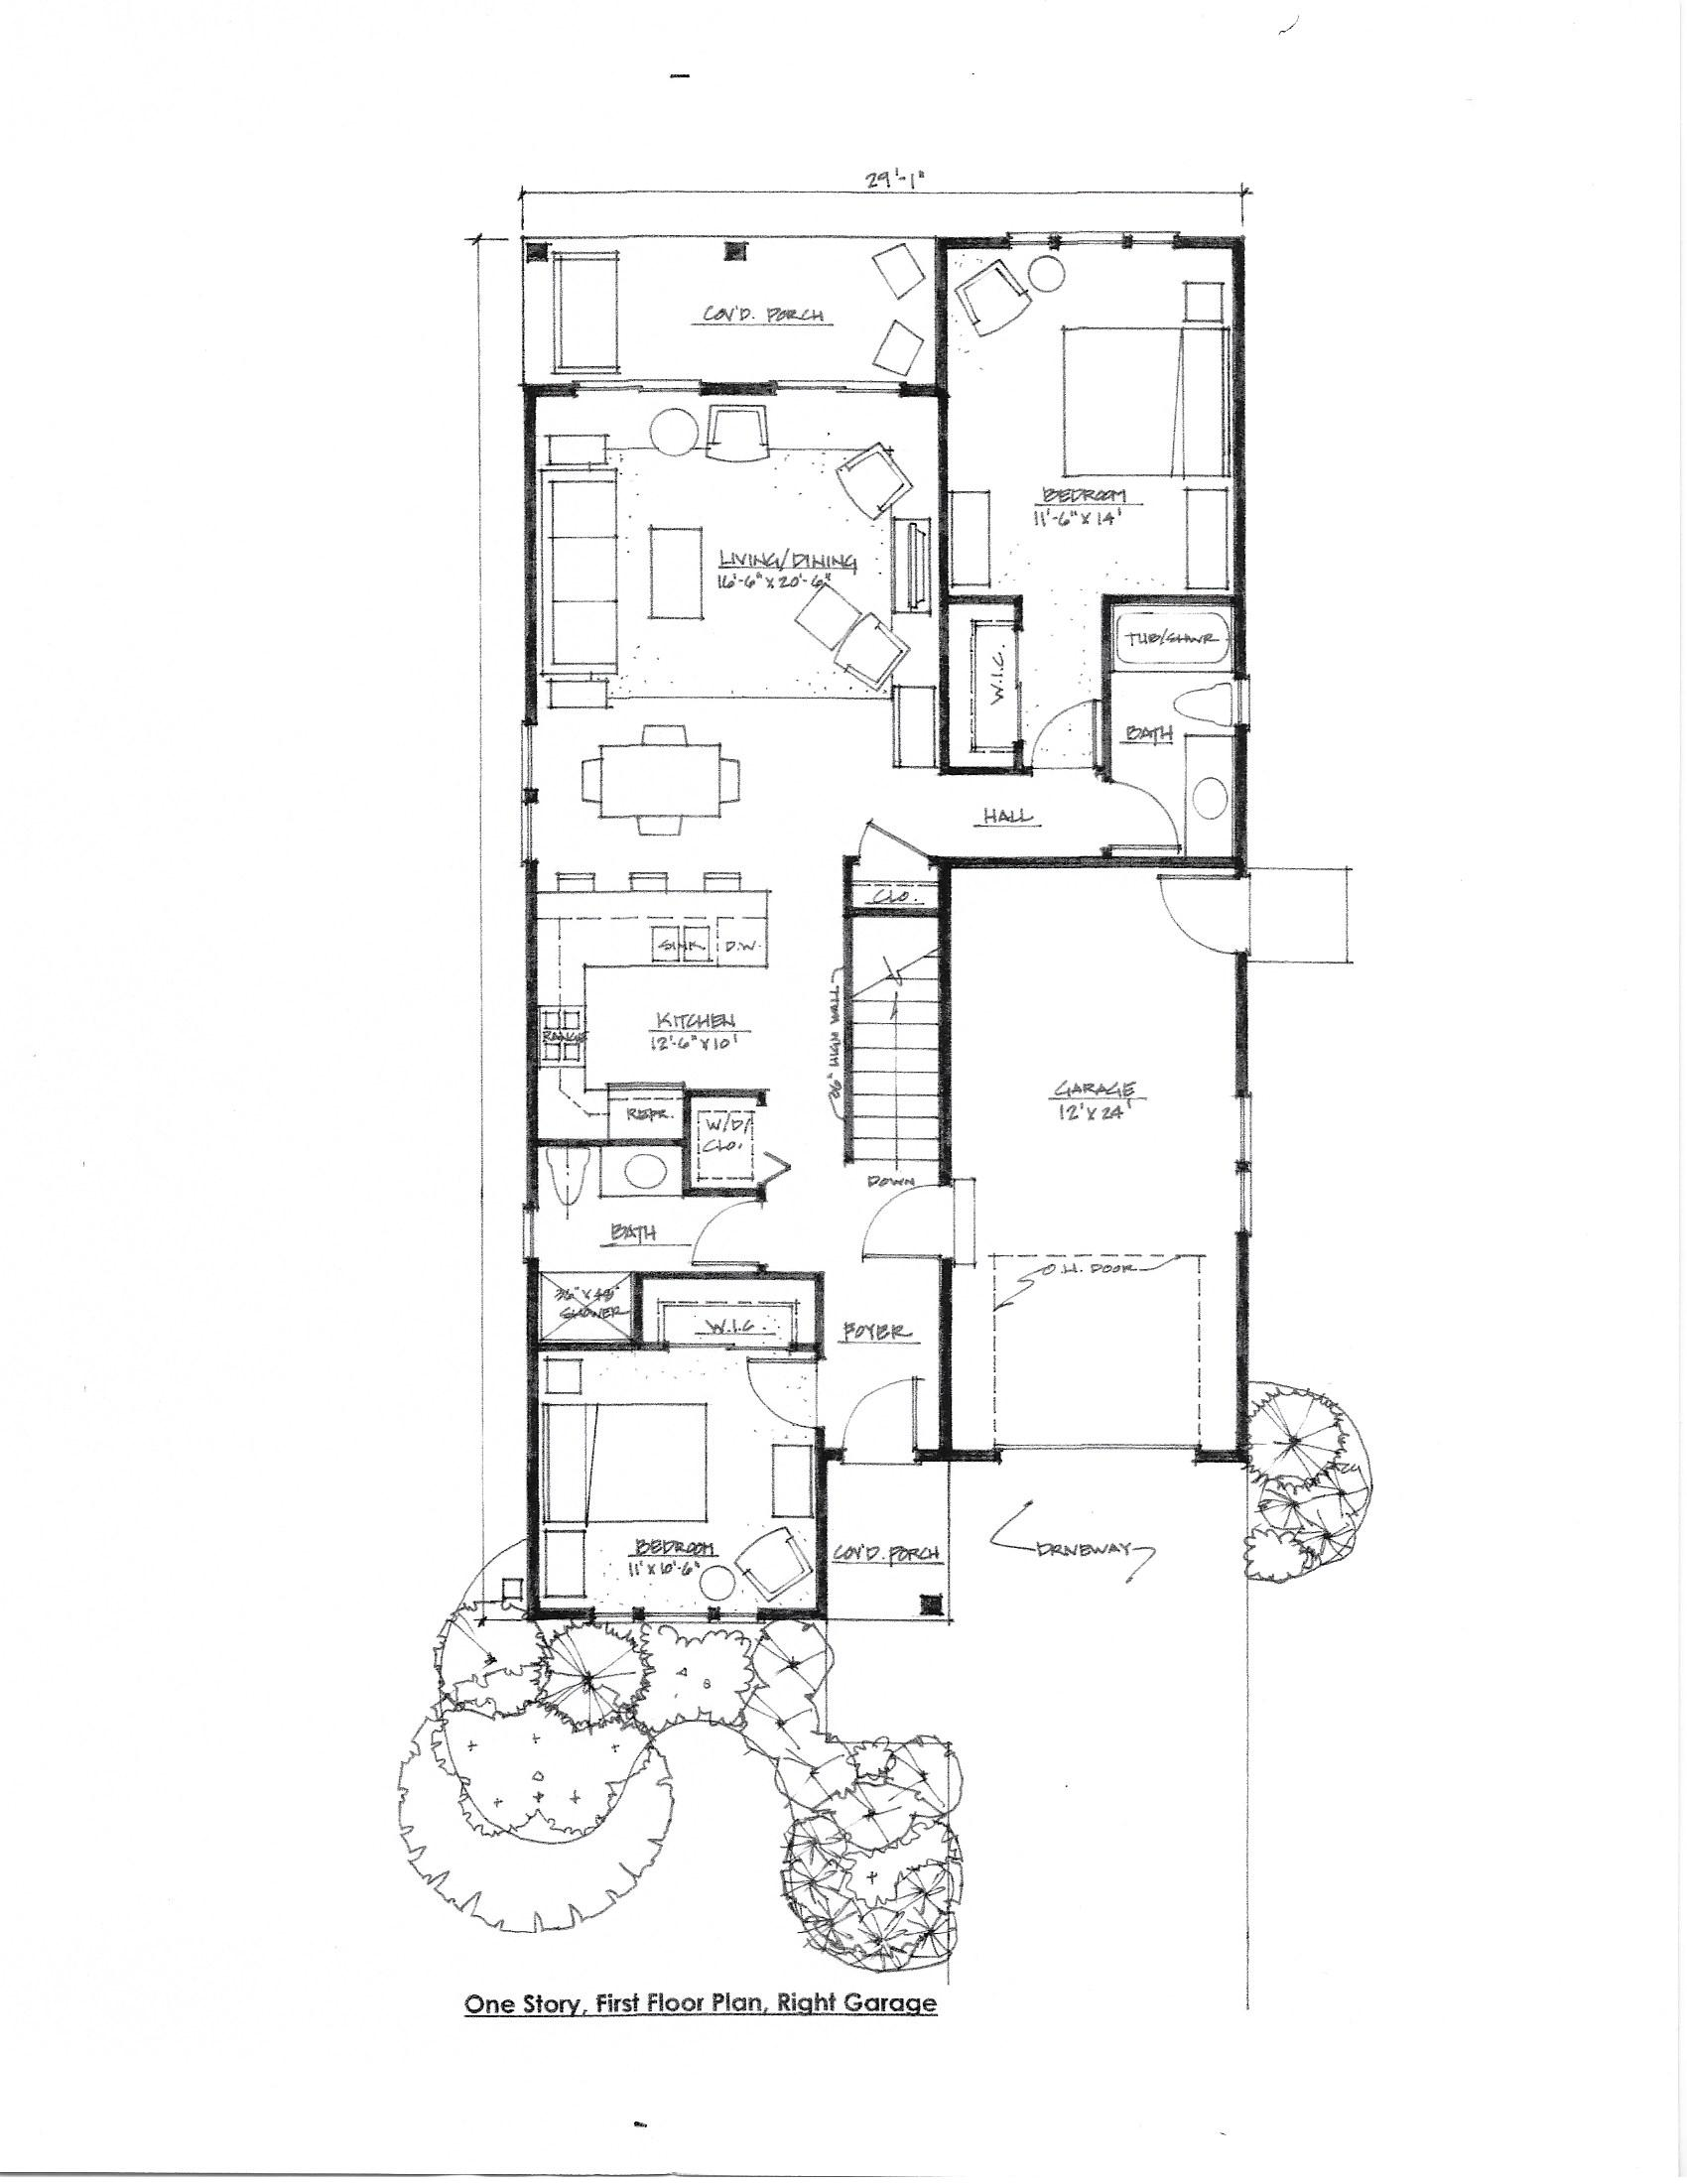 The Cornell Floorplan, Right Garage